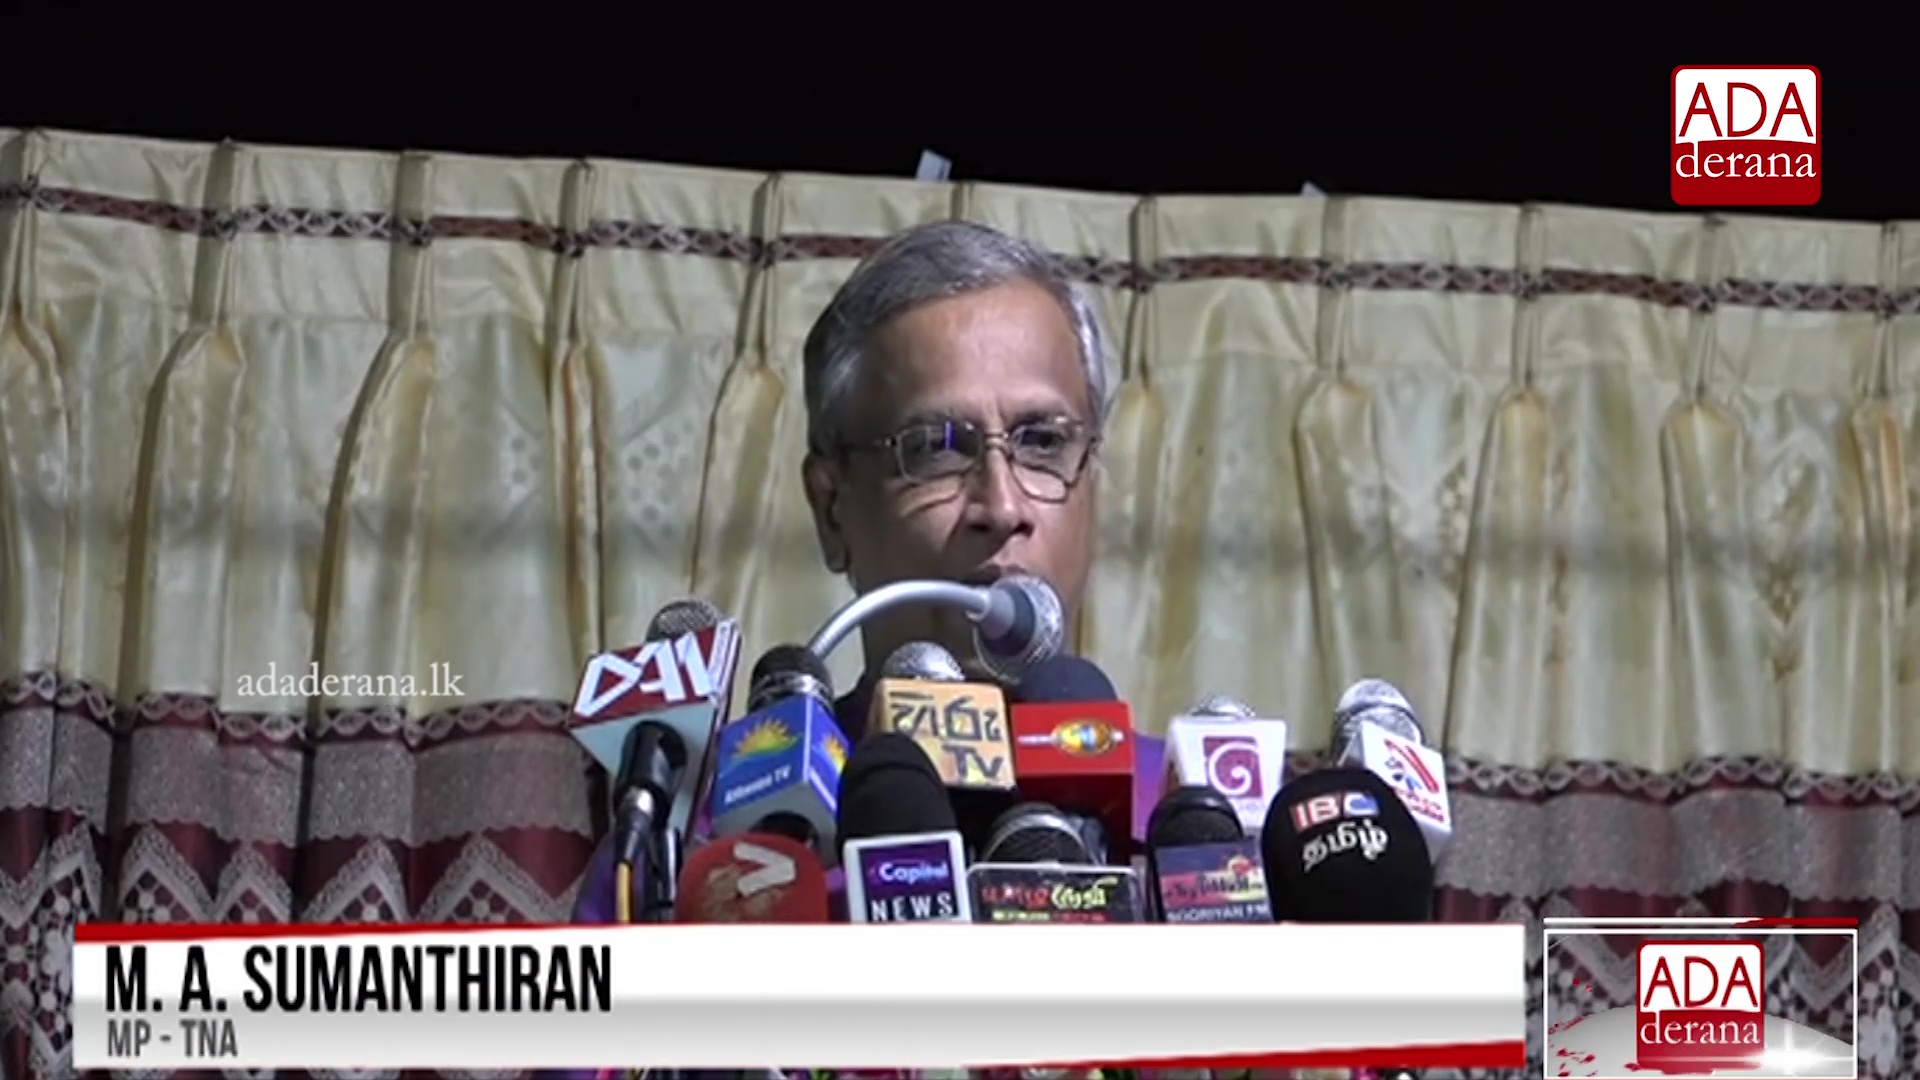 We are happy with former President&#39s statement - Sumanthiran (English)